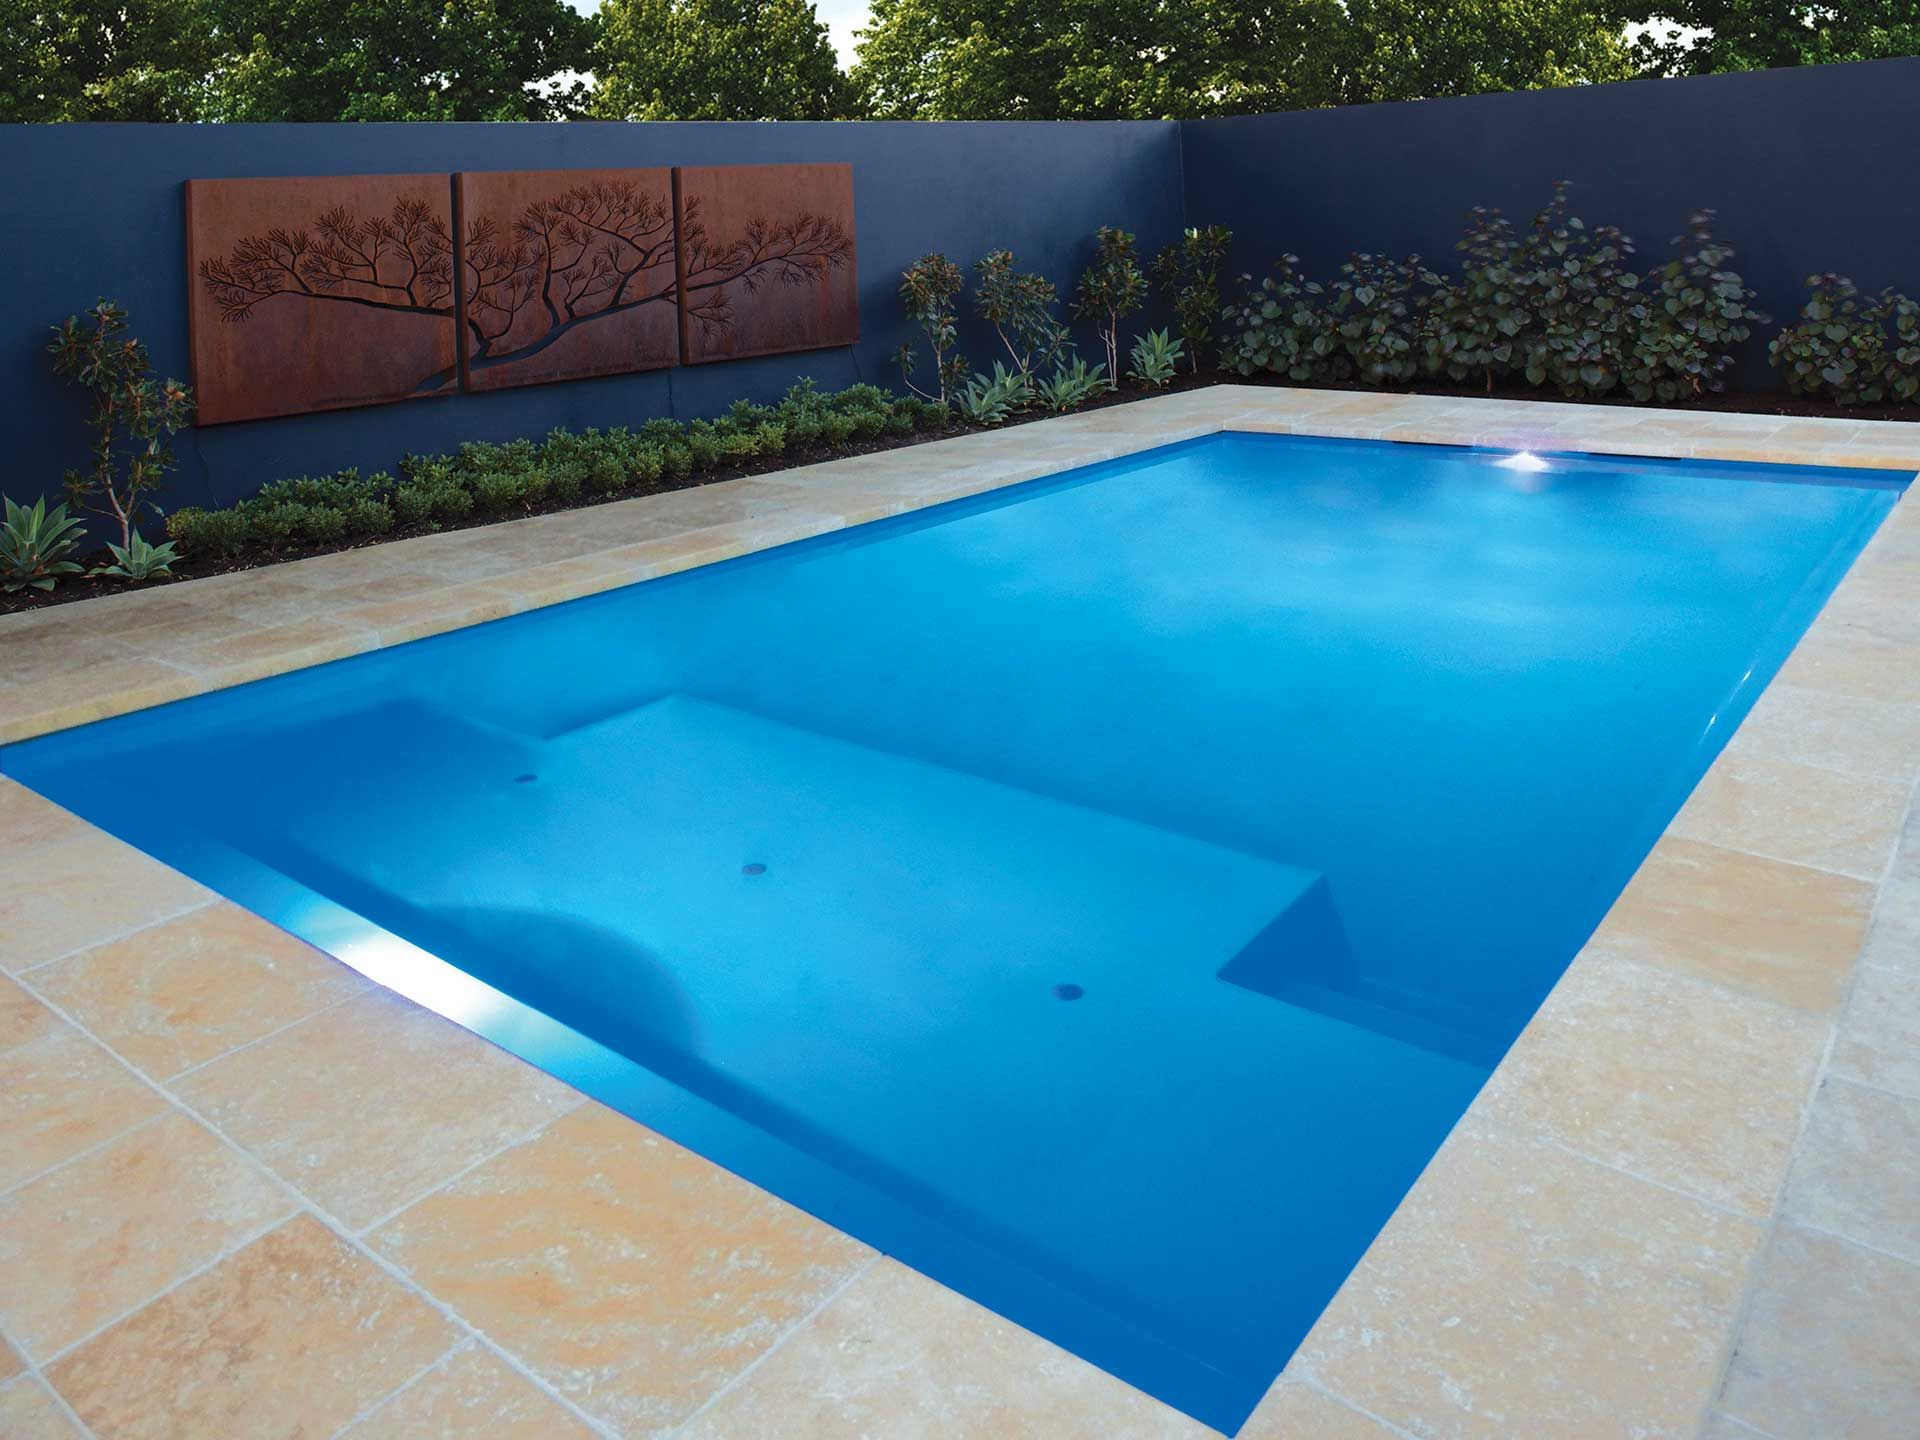 Hire The Best Swimming Pool Repair Services In Va We Will Have Your Swimming Pool Service A Cool Swimming Pools Fiberglass Swimming Pools Small Backyard Pools